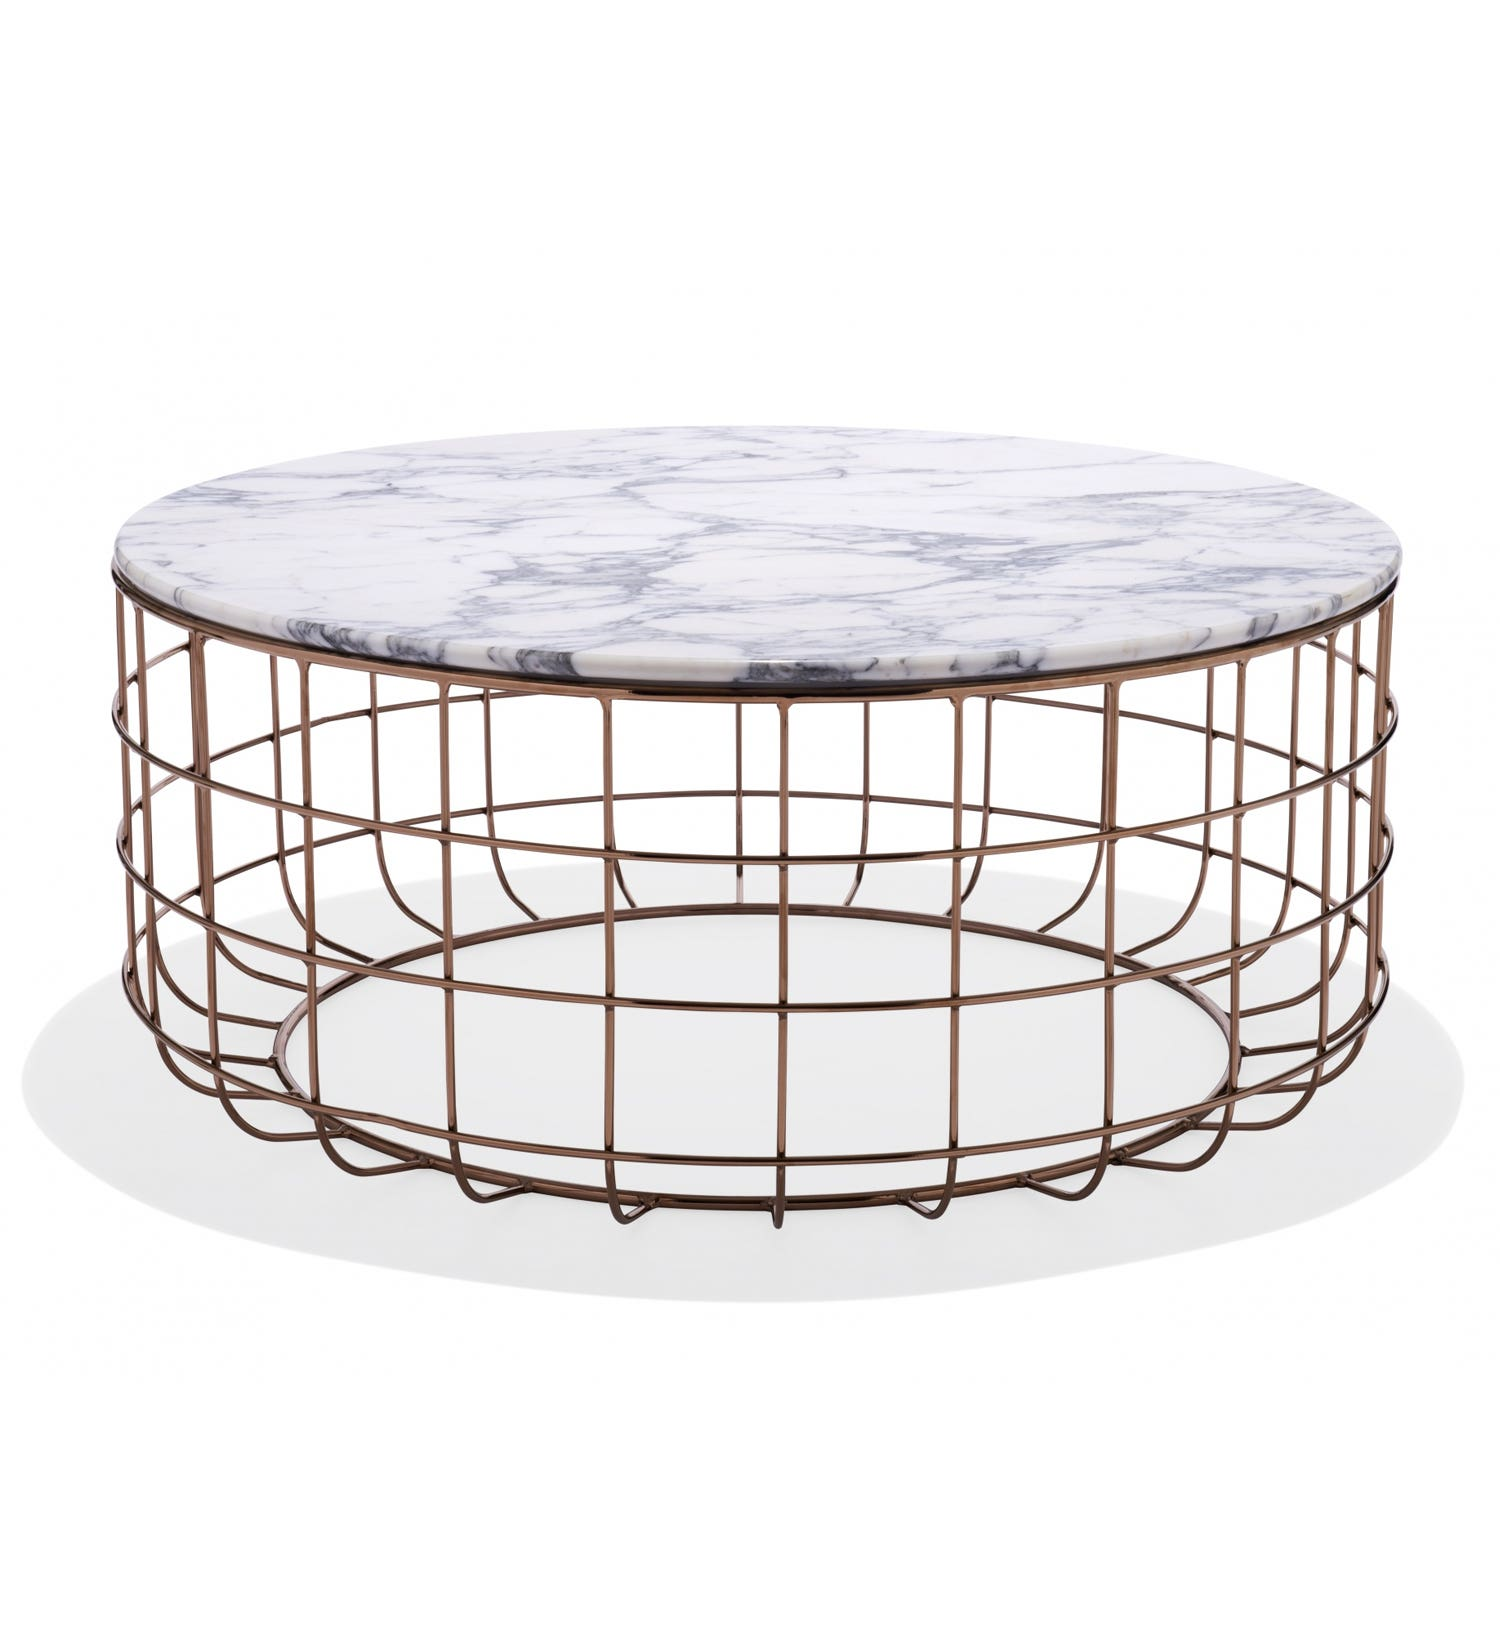 Fabulous St Clair Table Caraccident5 Cool Chair Designs And Ideas Caraccident5Info